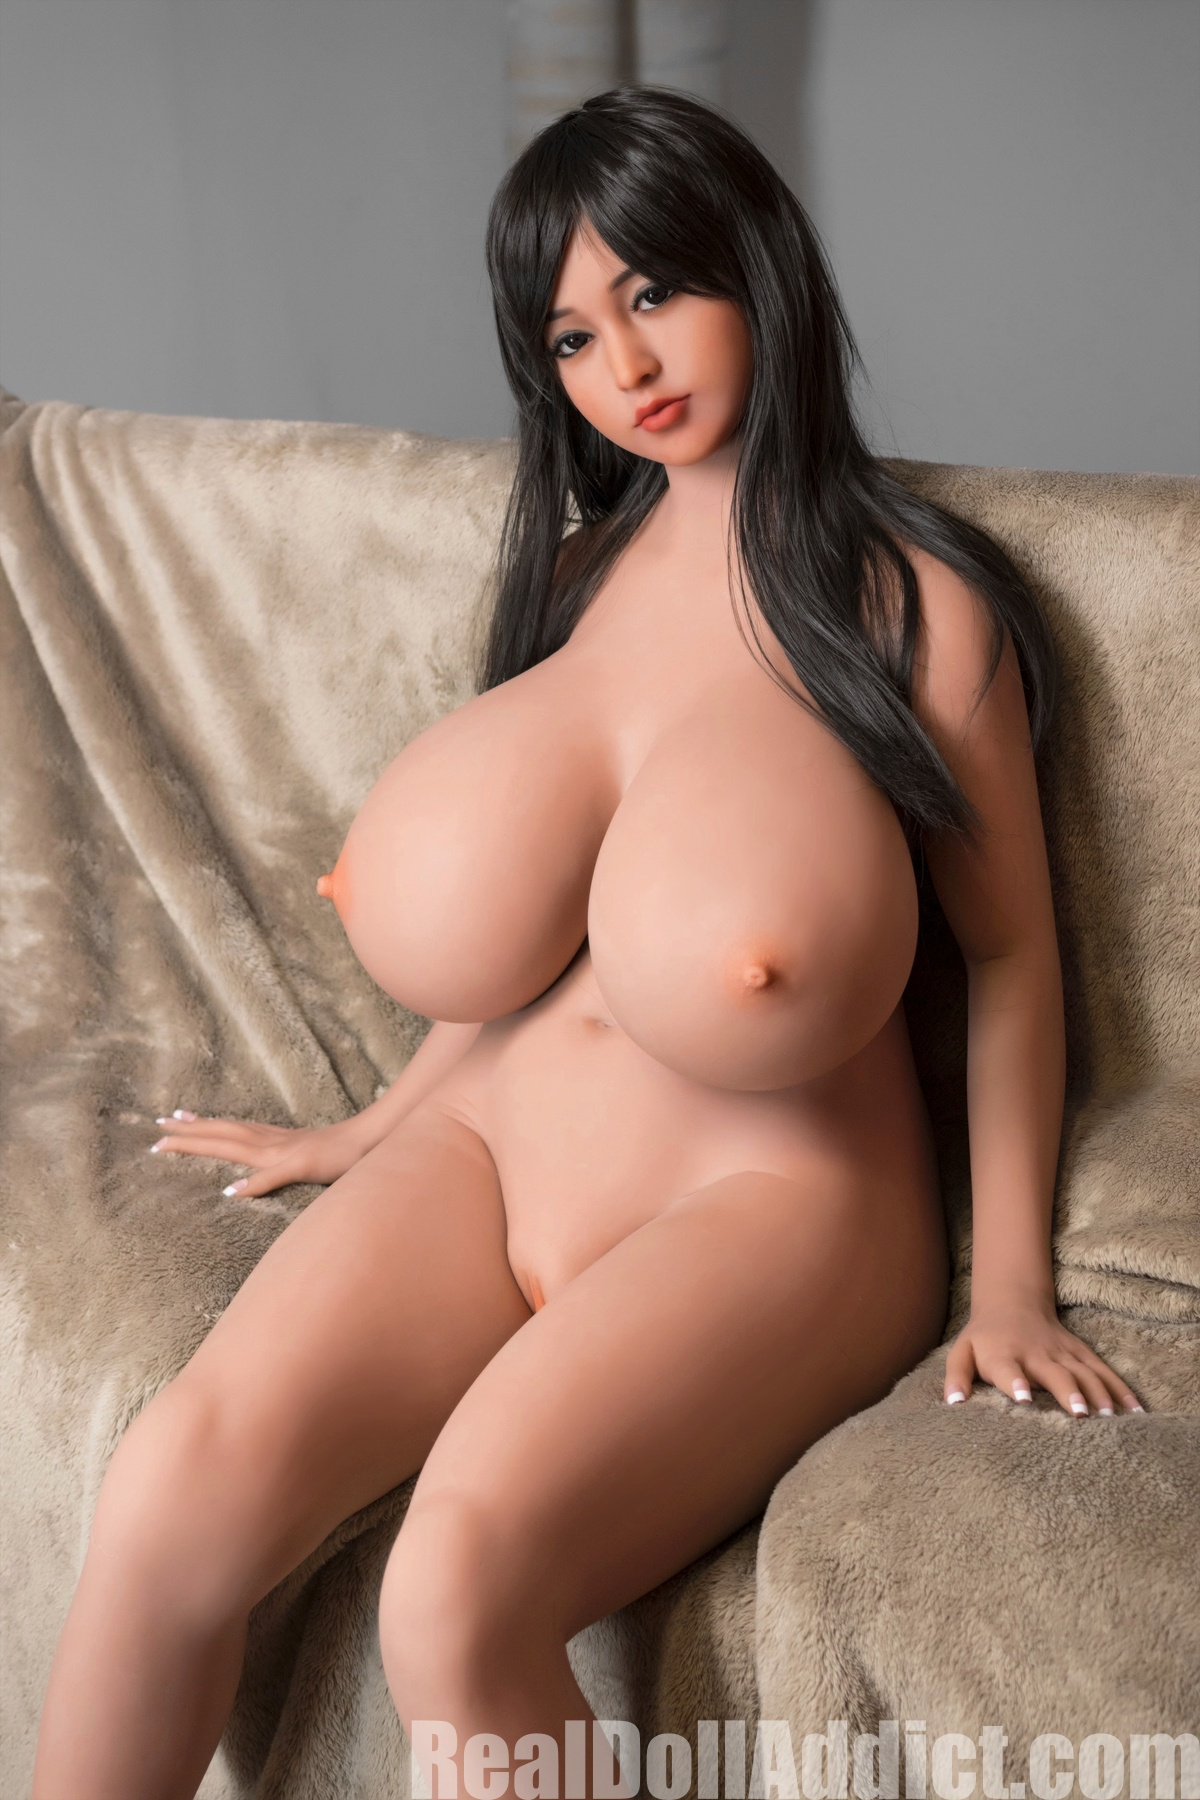 New Huge Boobs is Naked -Real Doll Addict